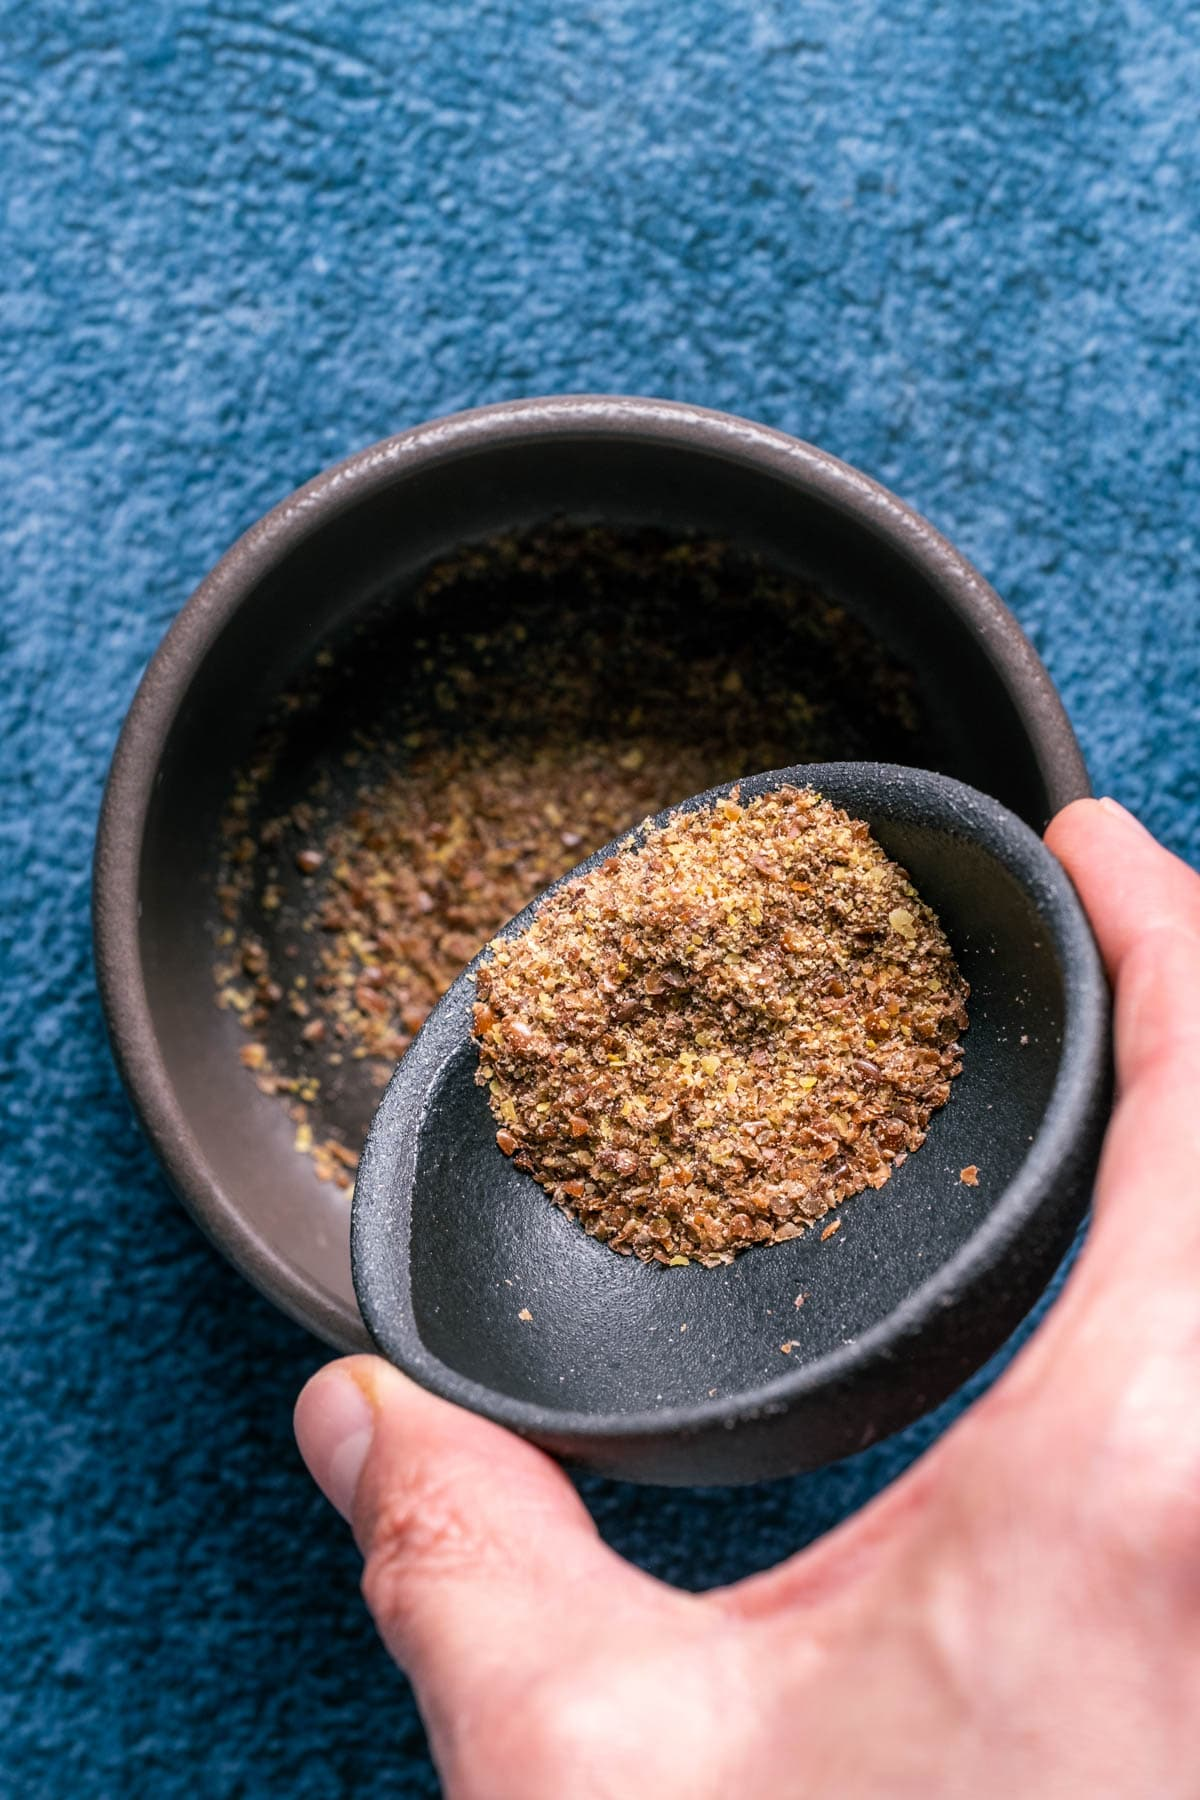 Photo of adding ground flaxseeds to a bowl.